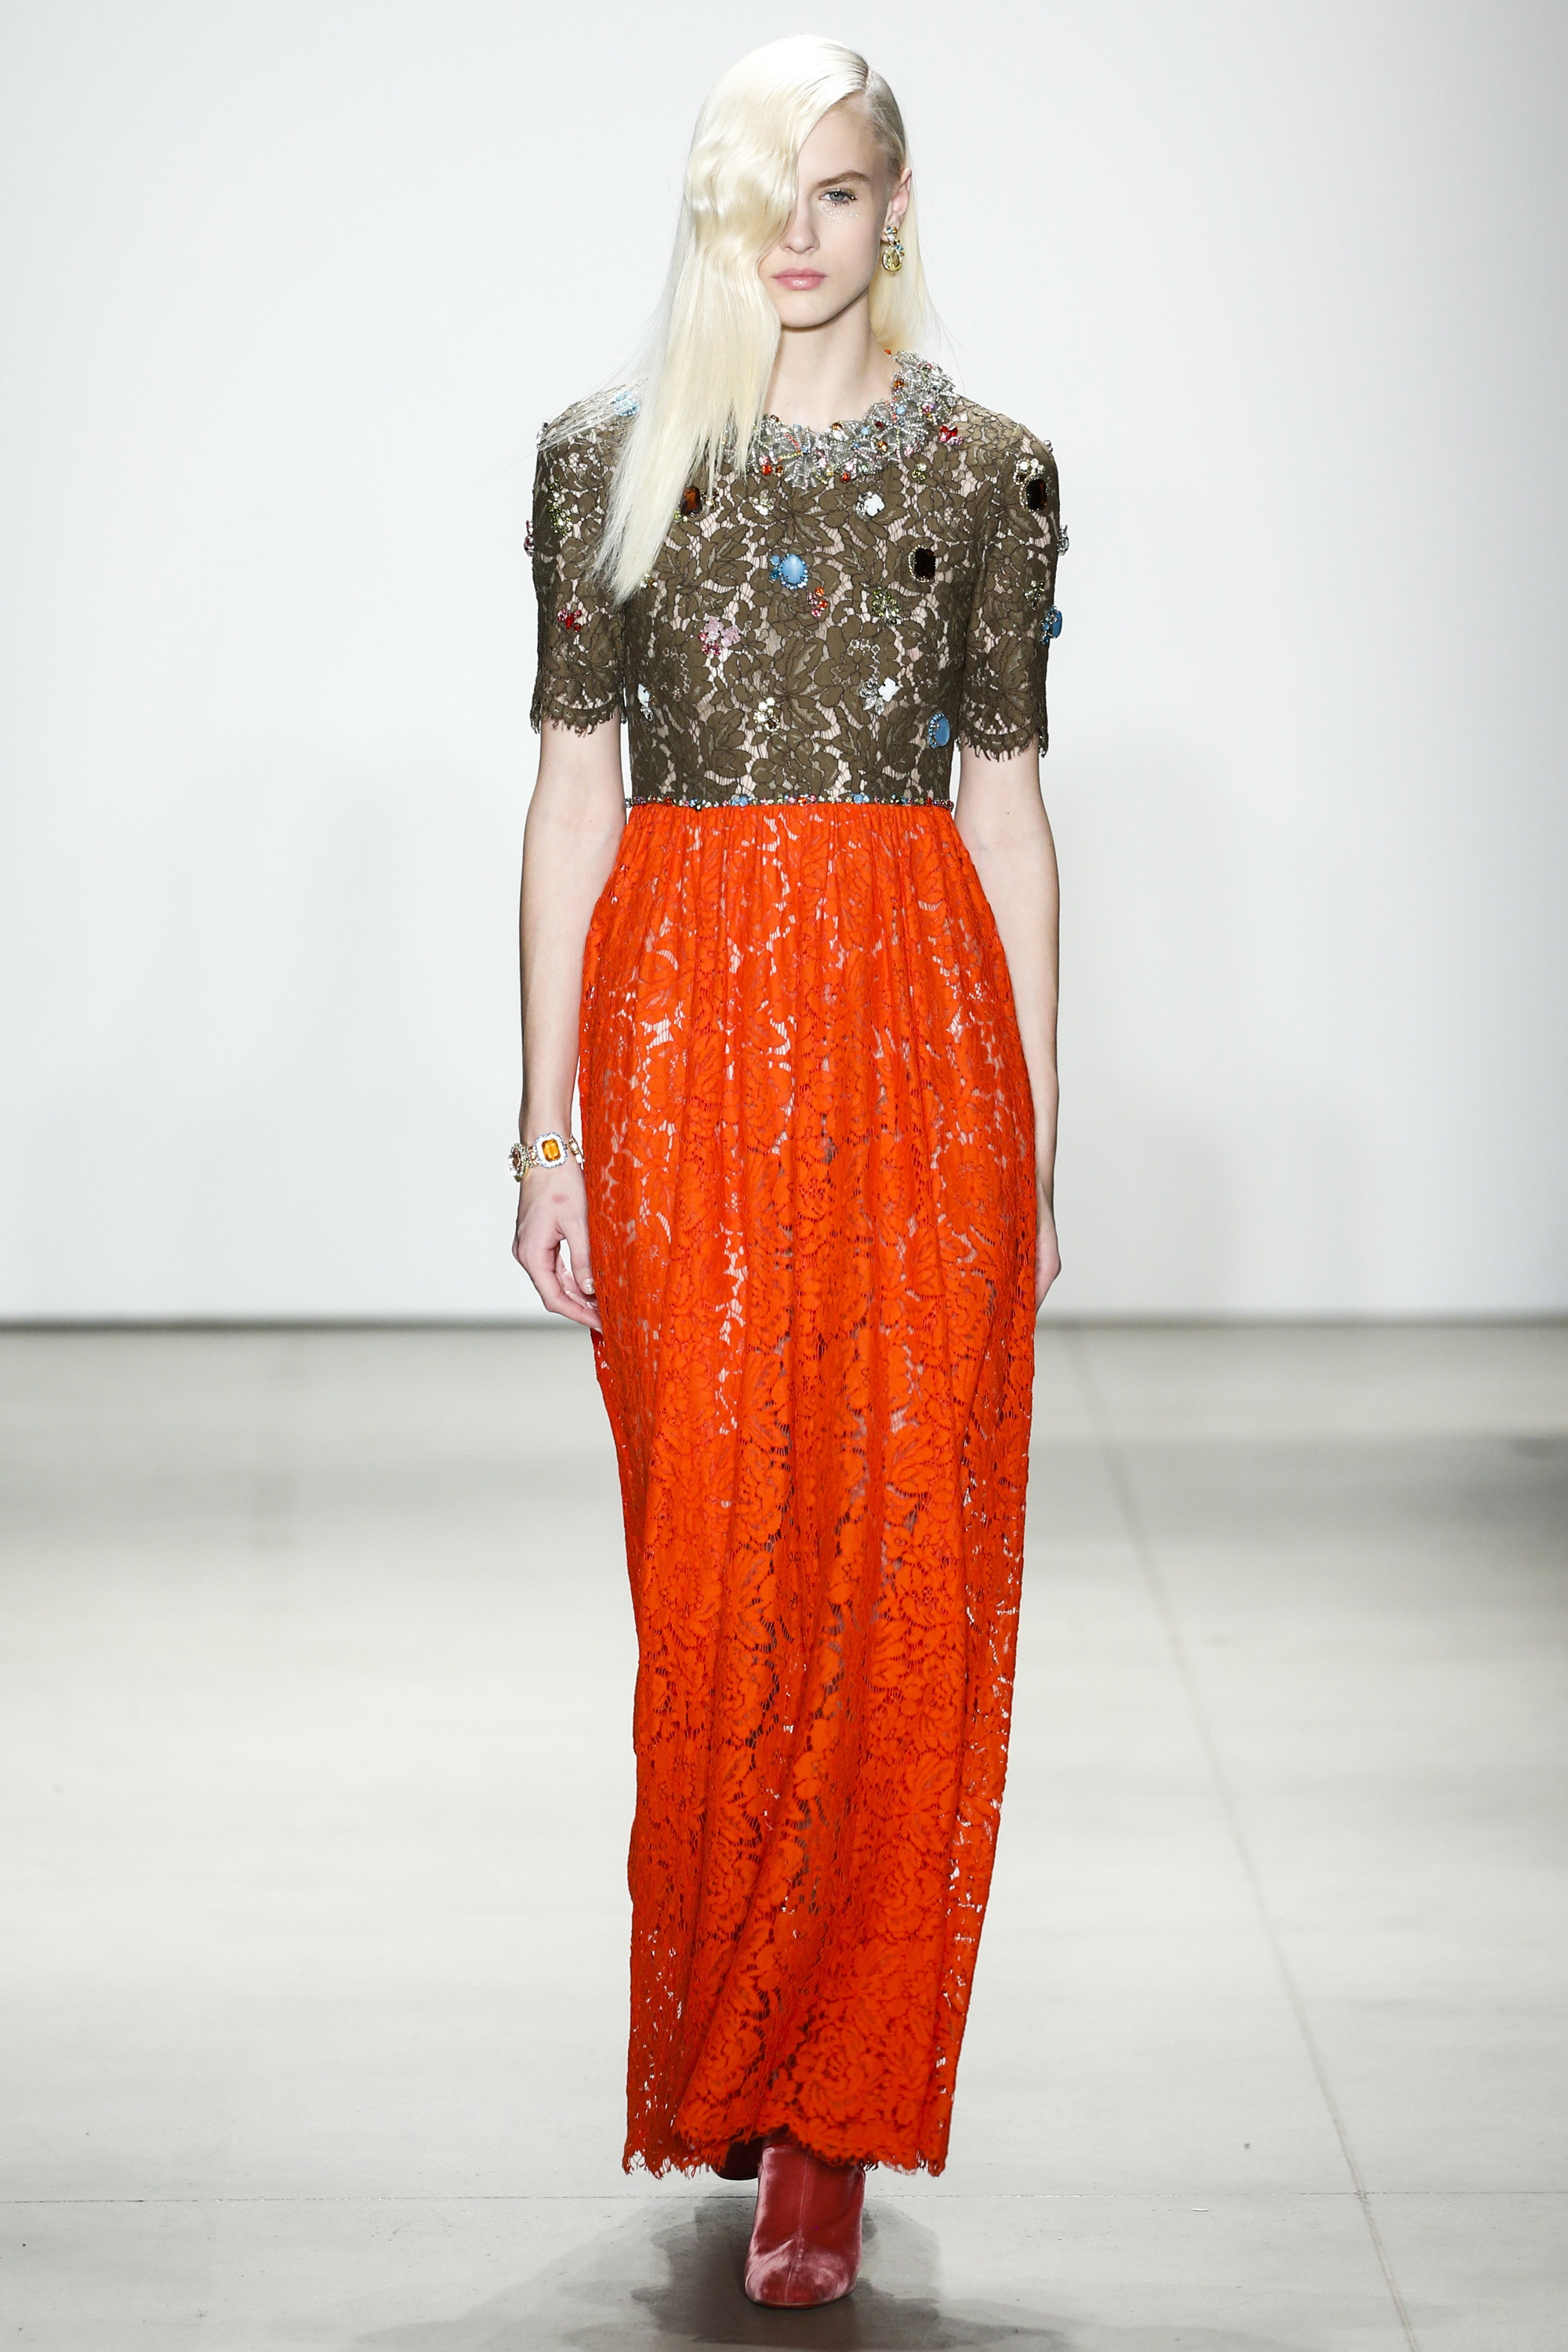 NYFW Jenny Packham Fashion Show Fall:Winter 2016 Louboutins & Love Fashion Blog Esther Santer NYC Street Style Models Collection Hair Makeup Dress Sequins Trend Gown Metallic Gold Beautiful Pretty Pink Color Red Yellow Floral Sheer Front Slit Skirt.jpg